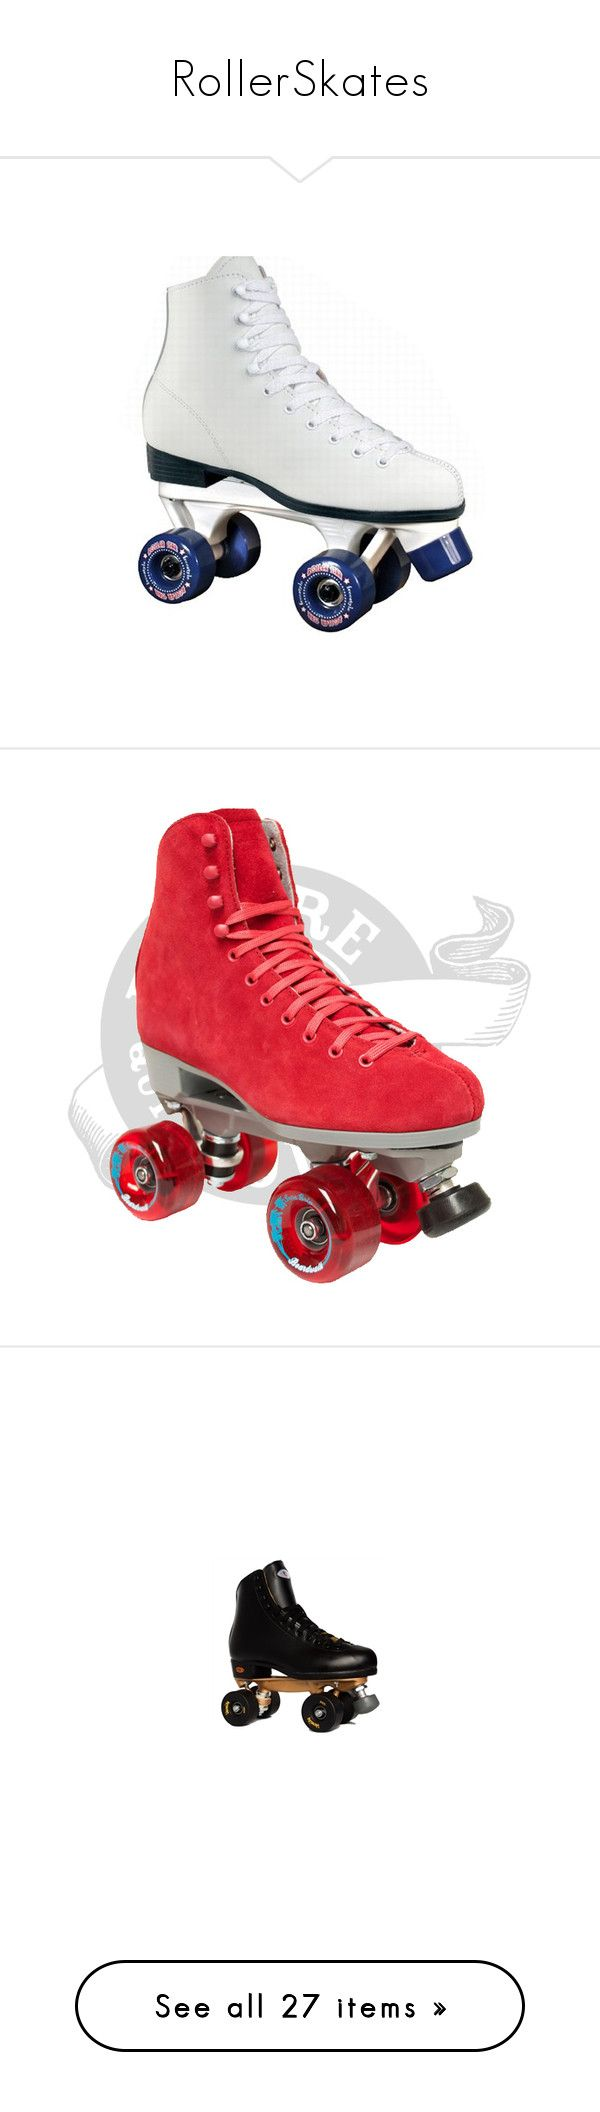 """RollerSkates"" by poildechameau ❤ liked on Polyvore featuring shoes, home, outdoors, roller skates, fillers, accessories, skates, filler, rollerskates and sport"